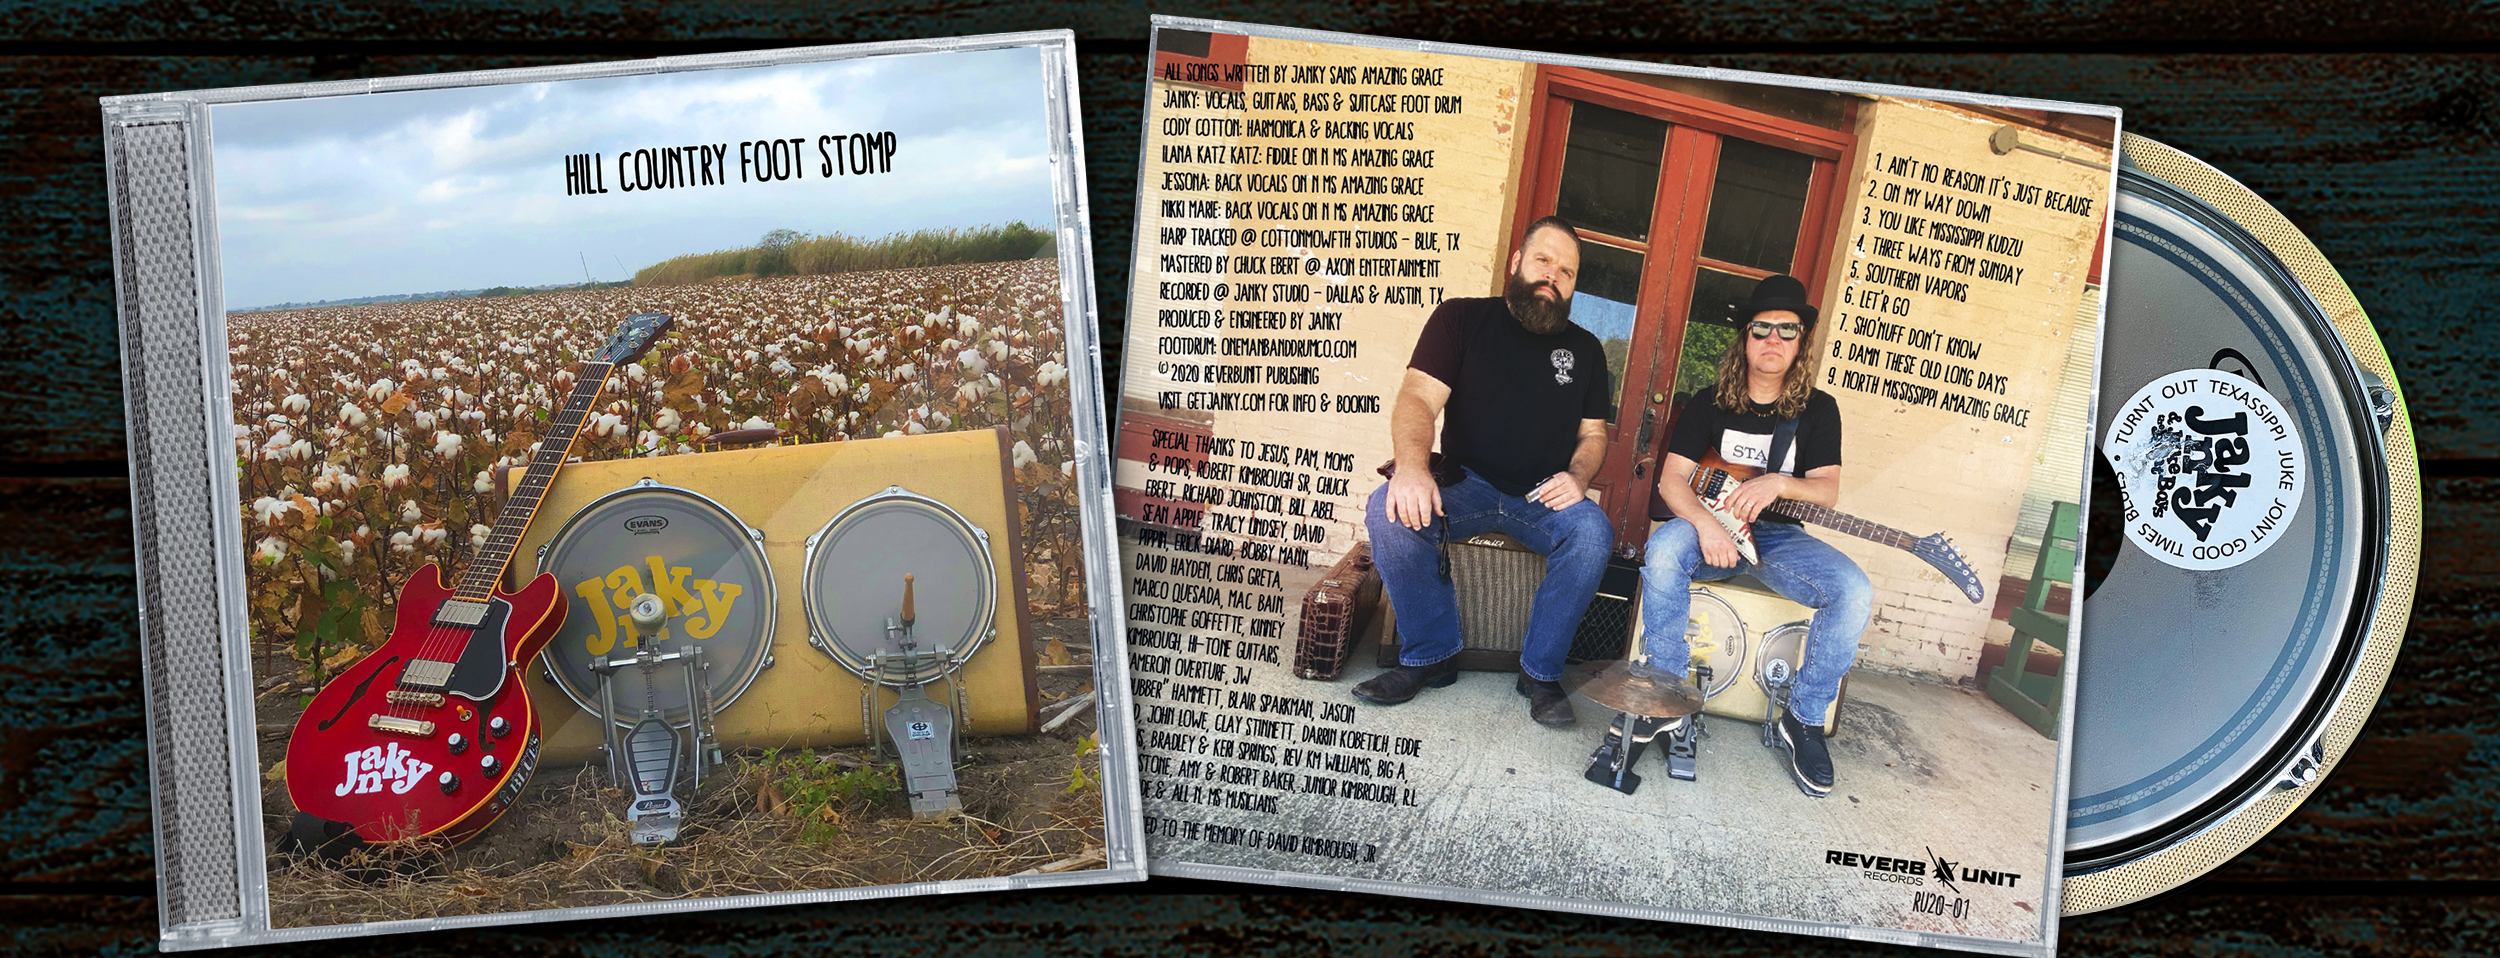 New Janky CD – Hill Country Foot Stomp